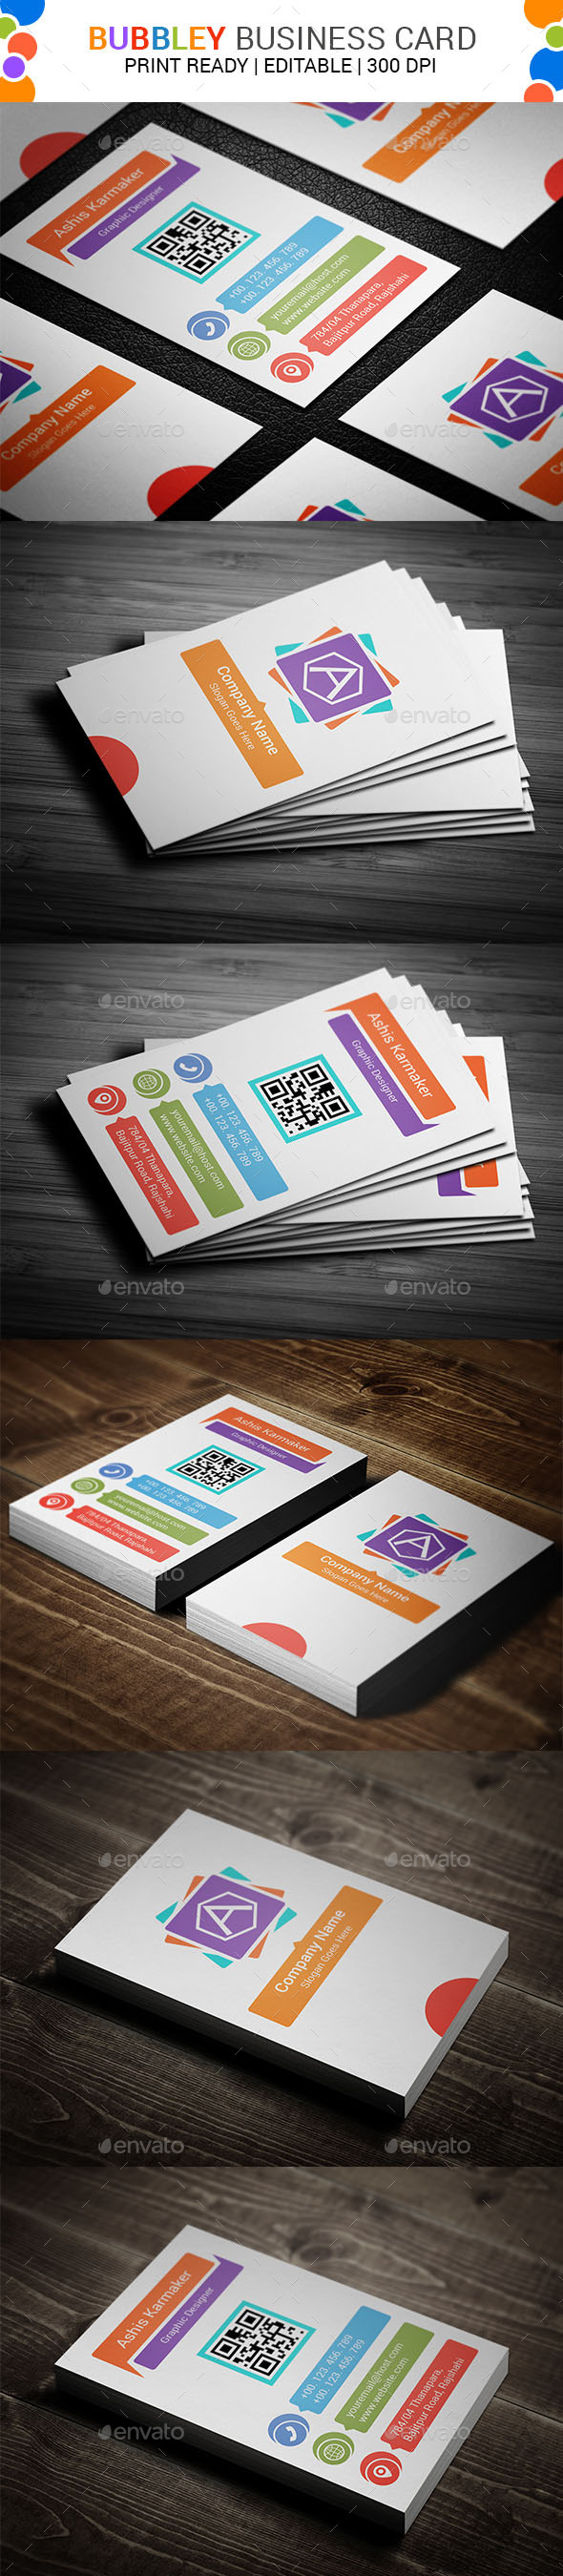 GraphicRiver Bubbley Business Card 11456520